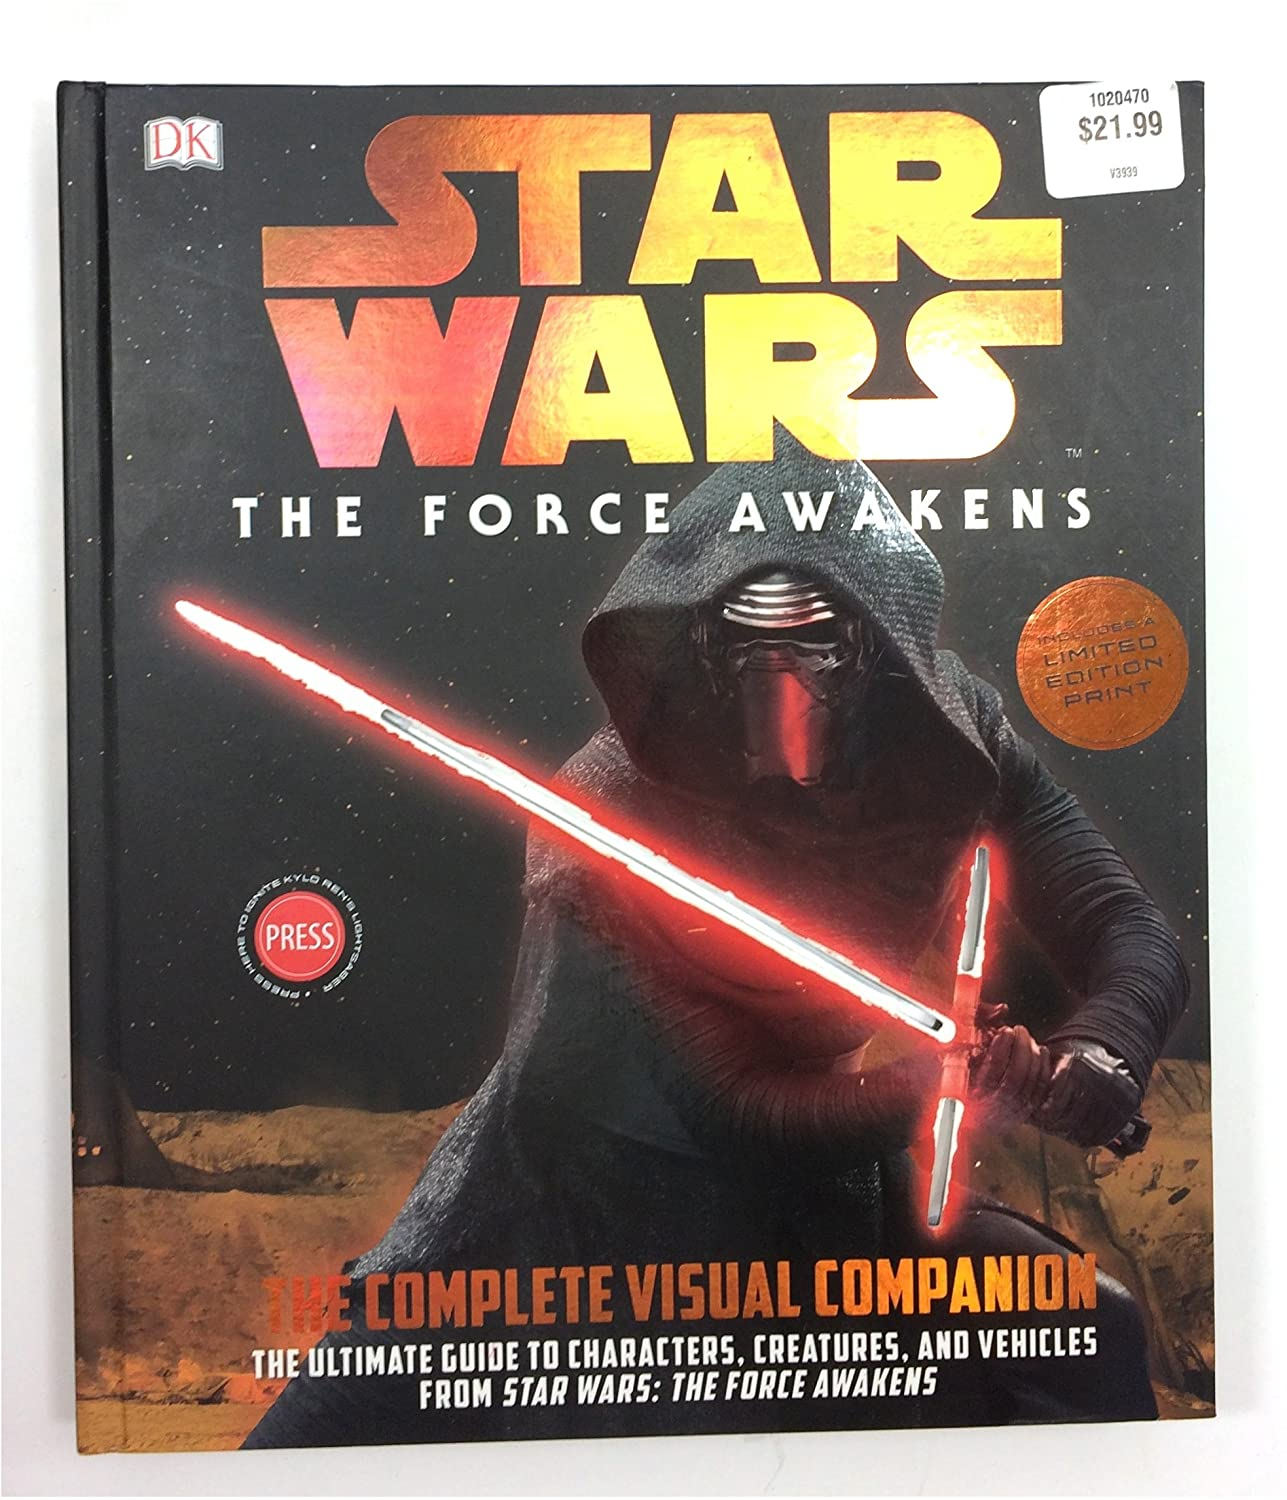 Star Wars The Force Awakens: The Complete Visual Companion